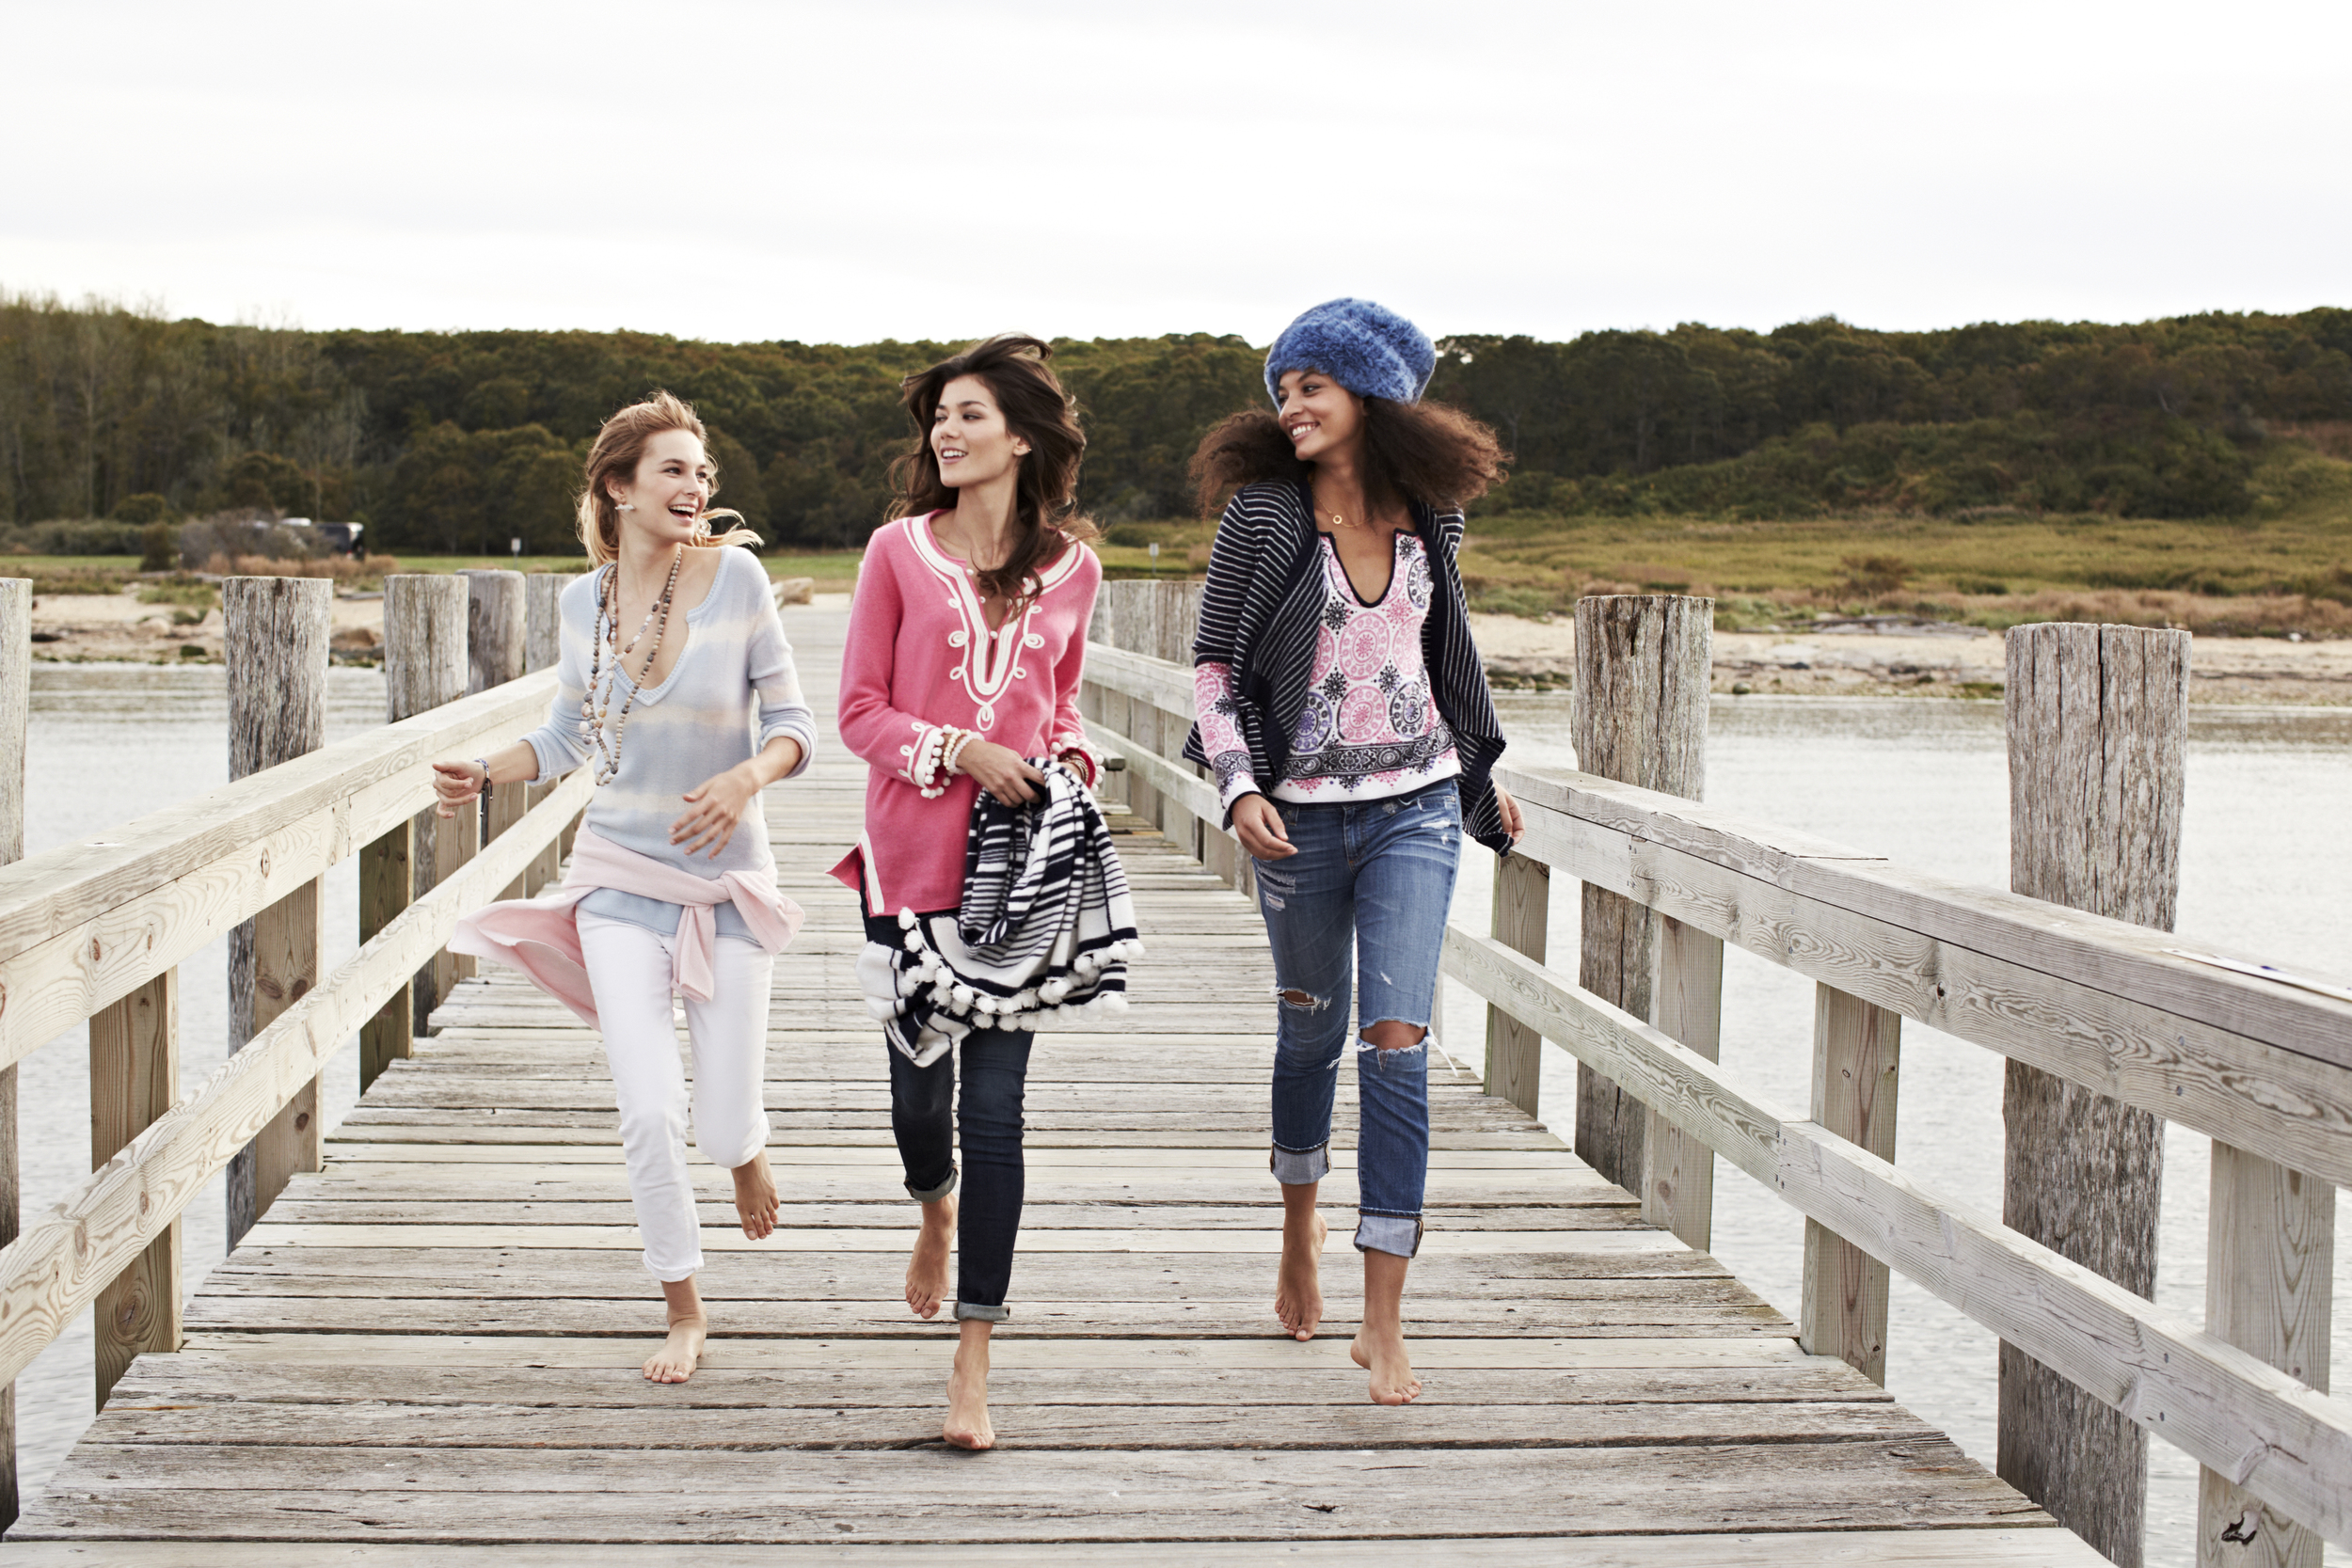 photo shoot for calypso st barth in the hamptons on a pier